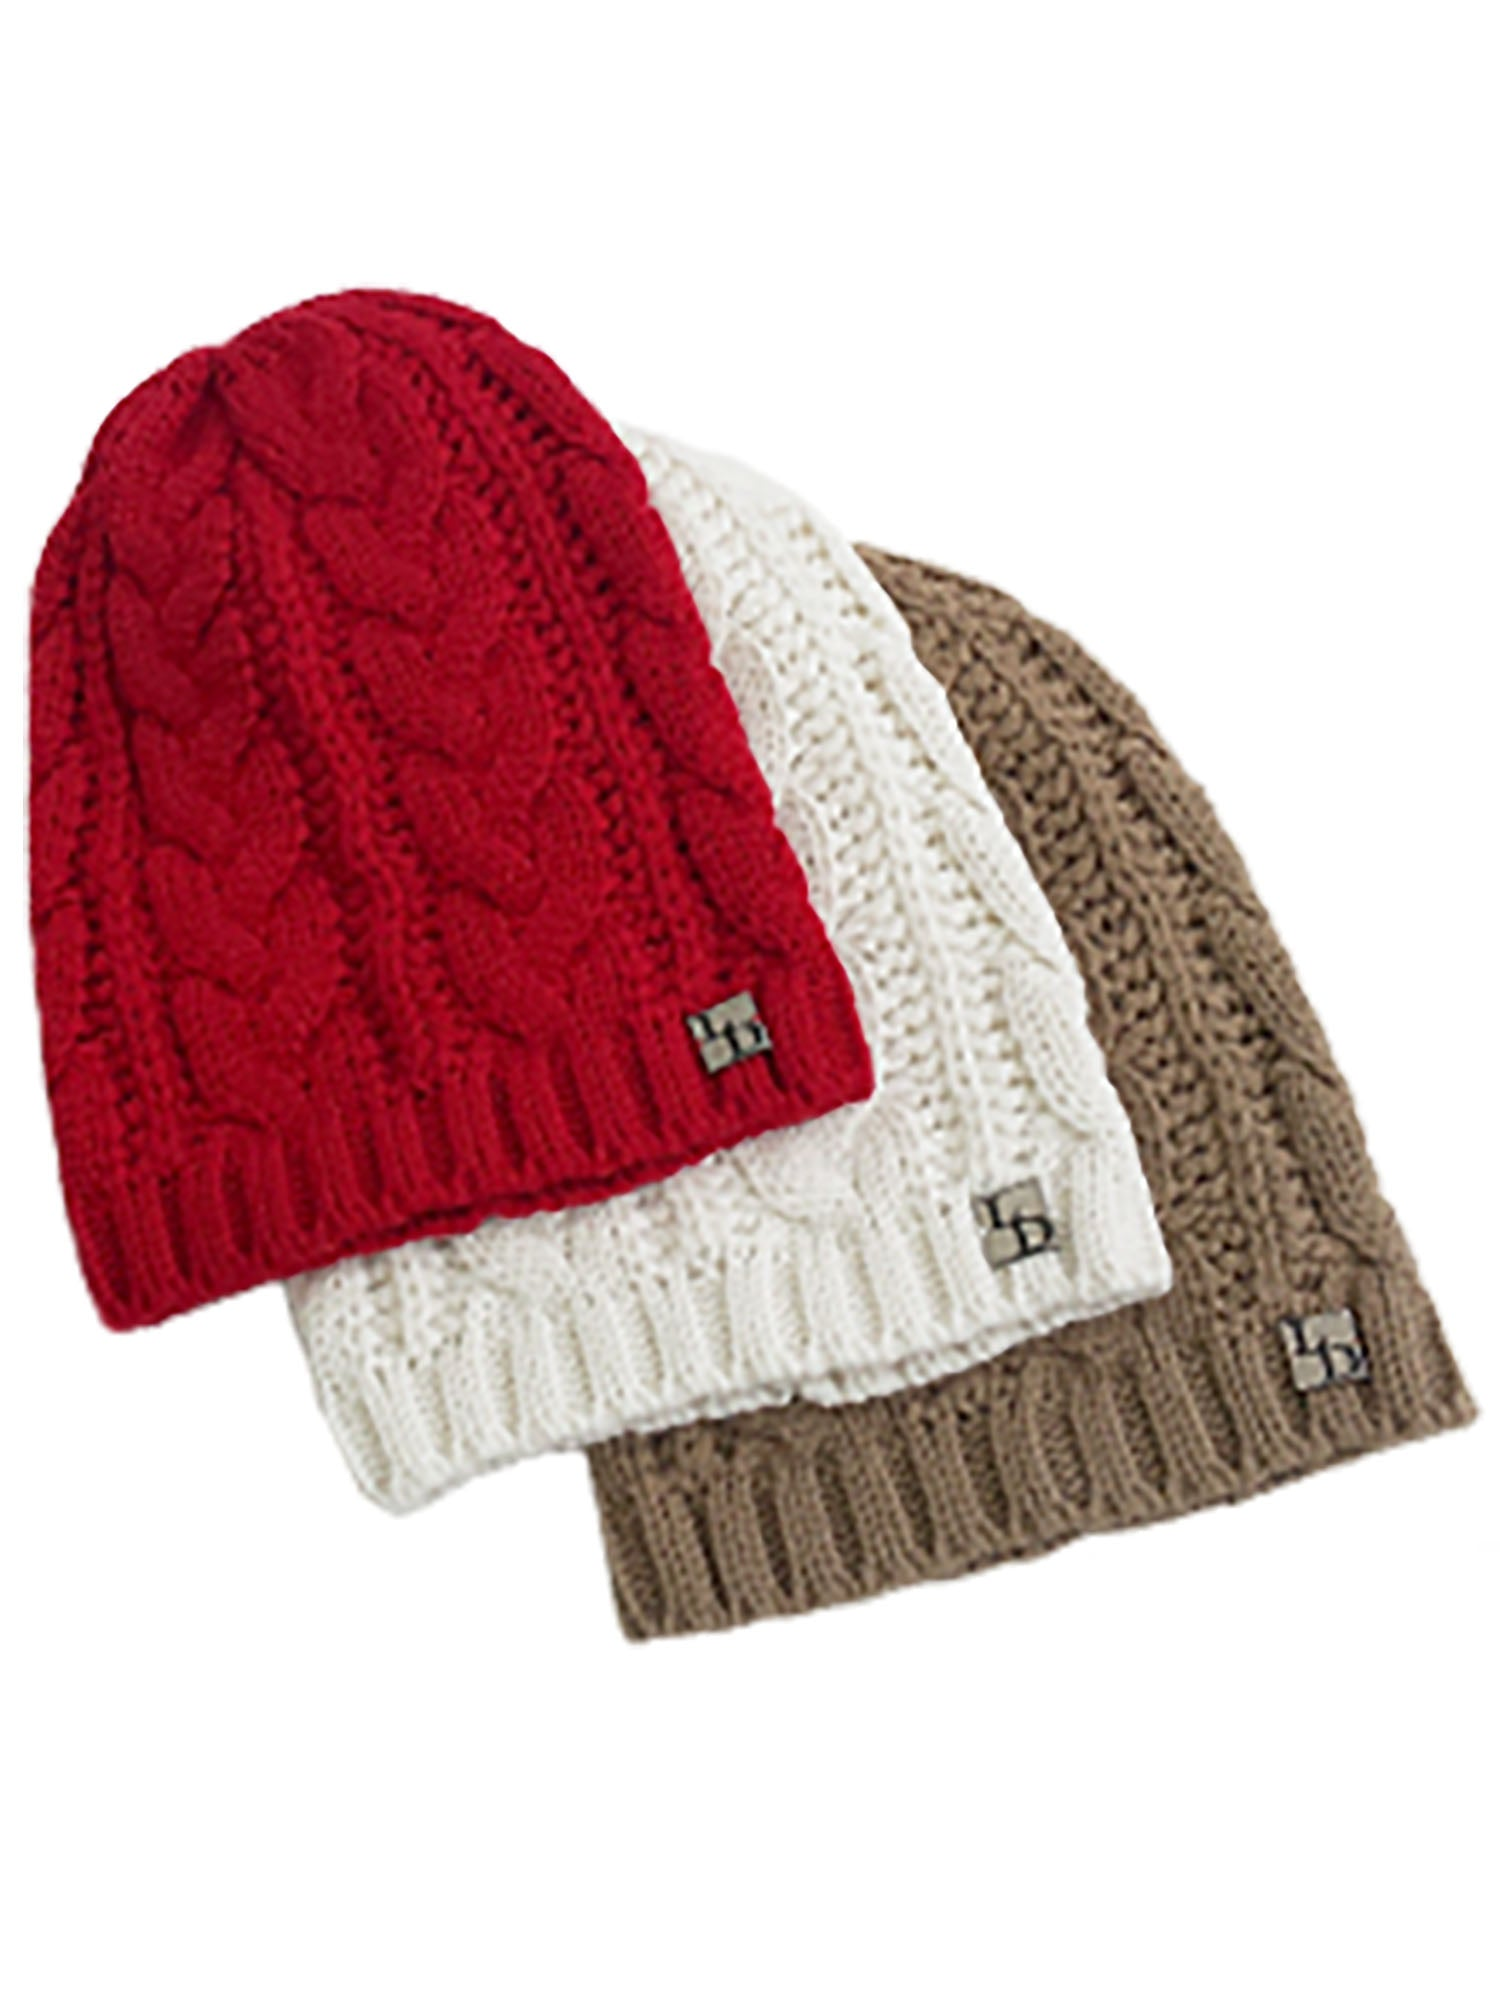 aec0012d1bfd6b 3 Pack Red Ivory Taupe Cable Knit Unisex Slouch Beanie Hats – Luxury Divas